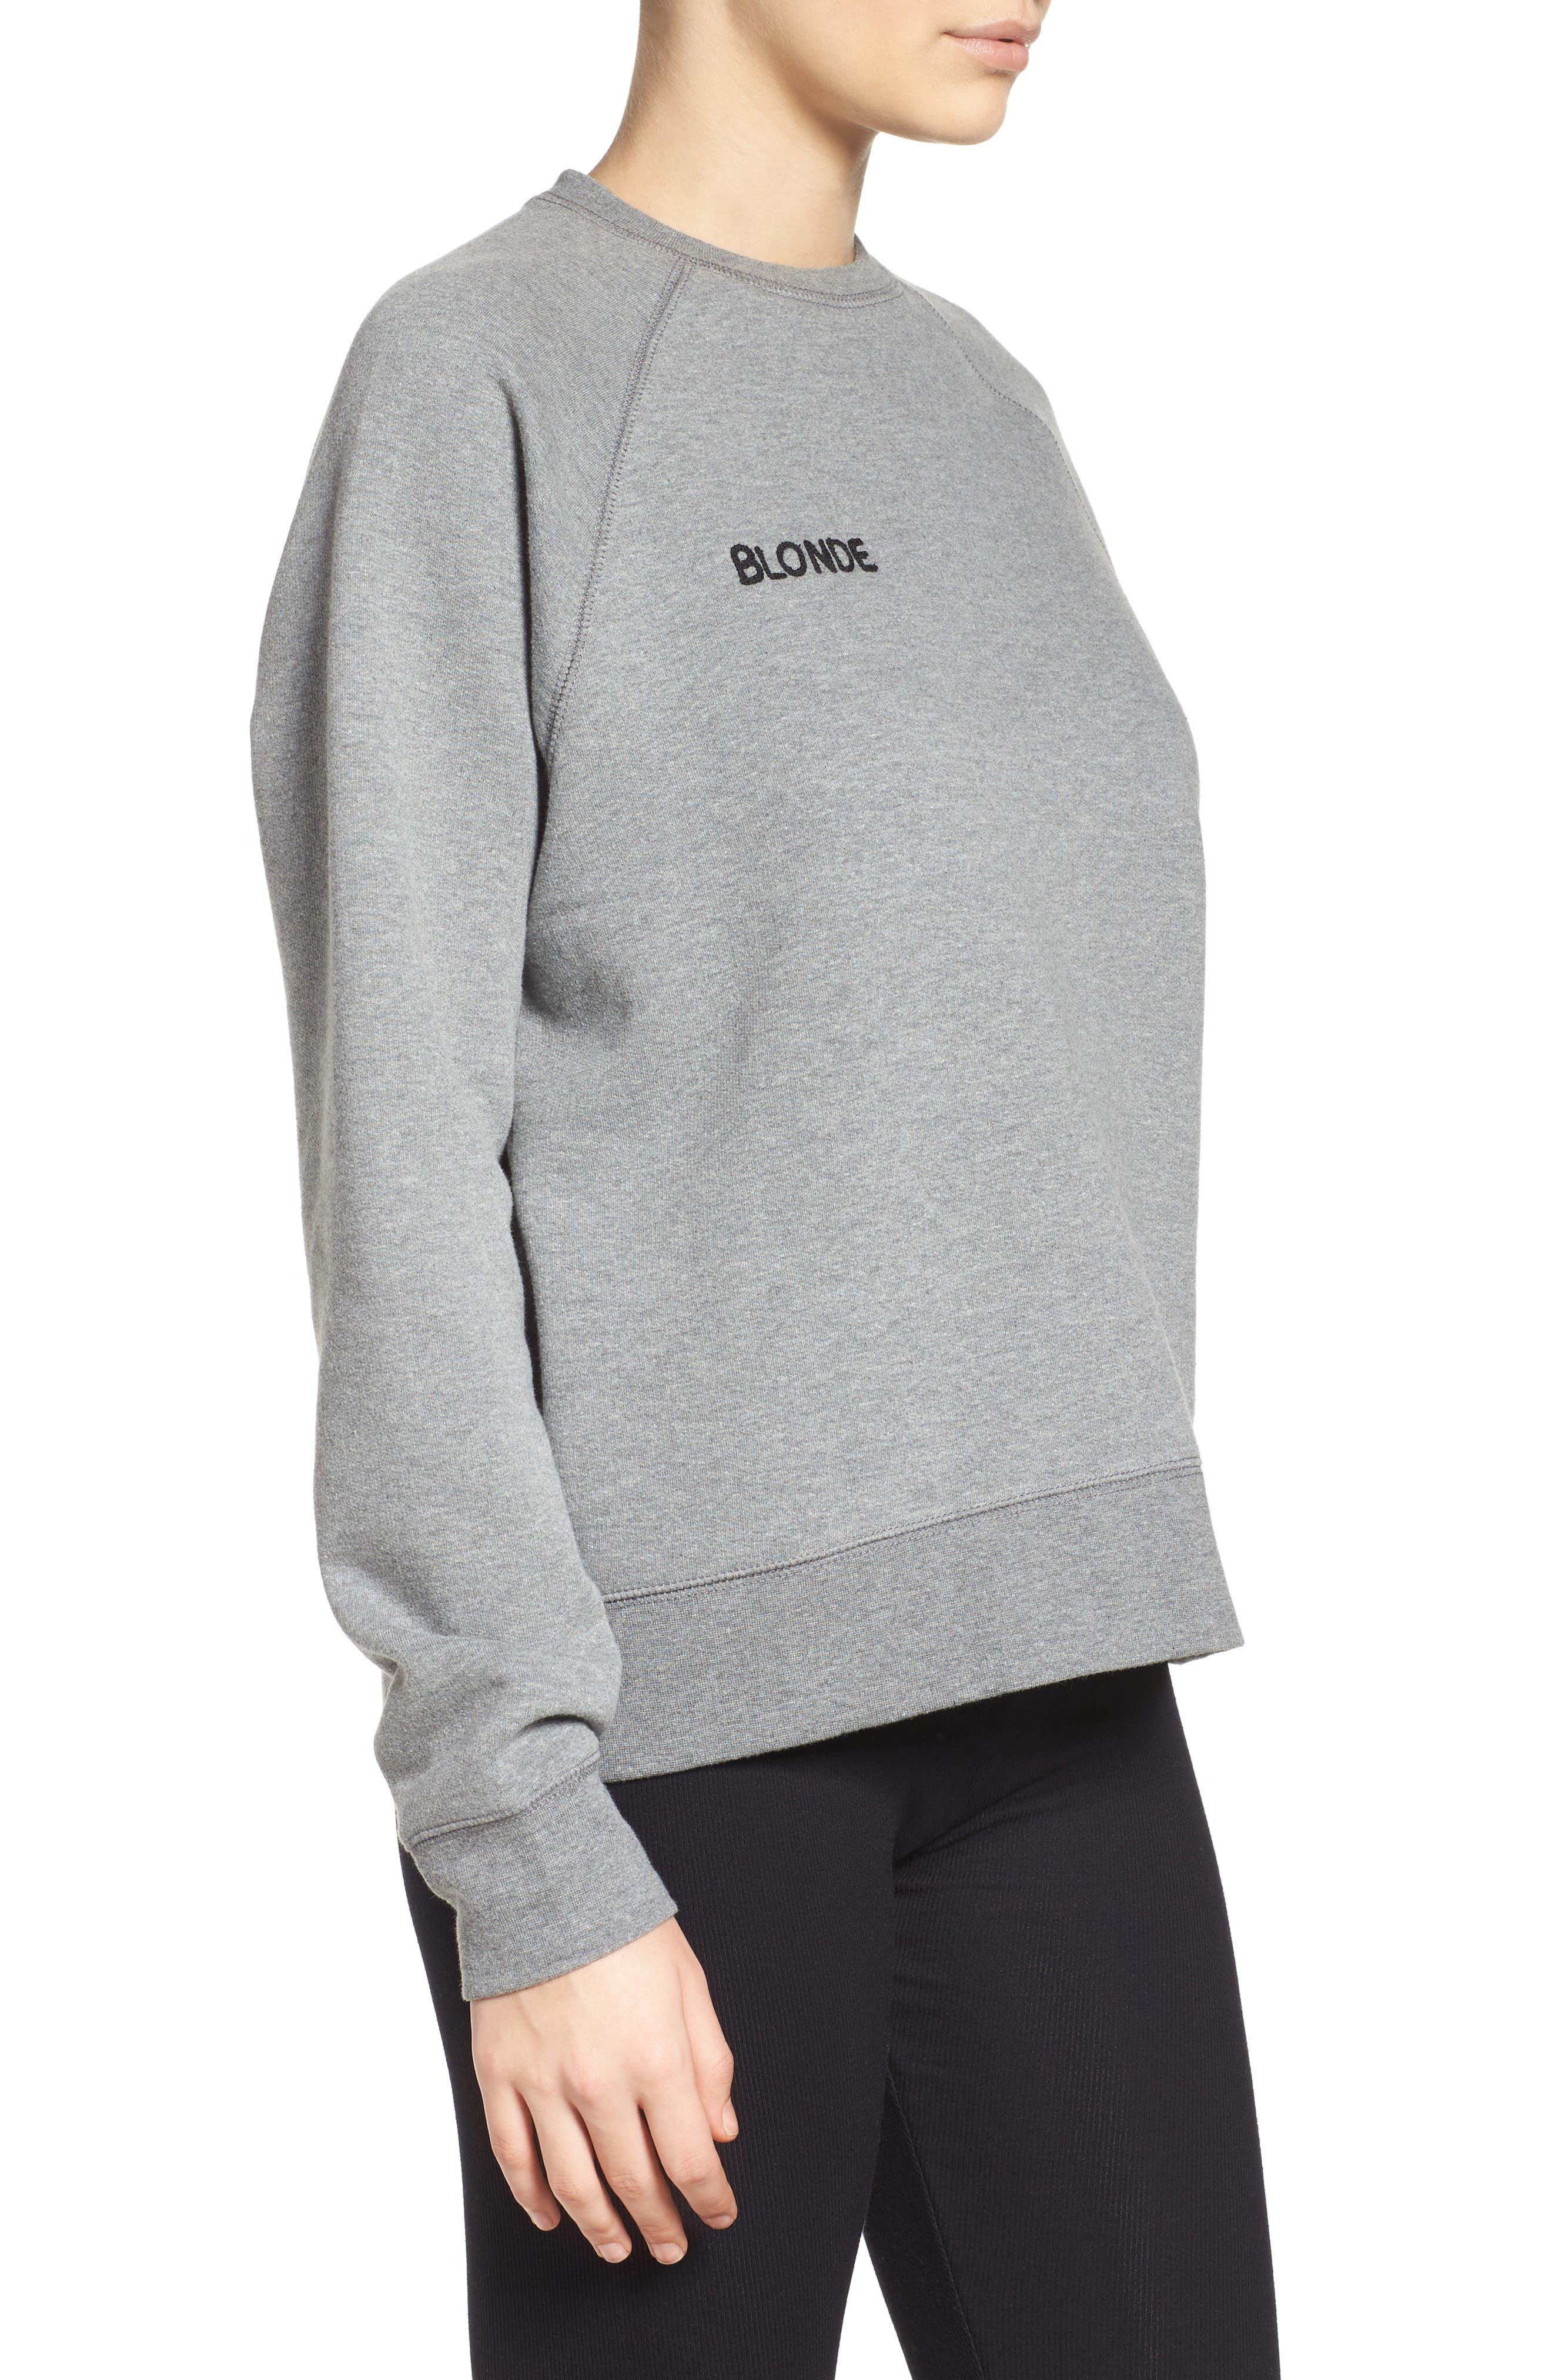 Blonde Crewneck Sweatshirt,                             Alternate thumbnail 3, color,                             030